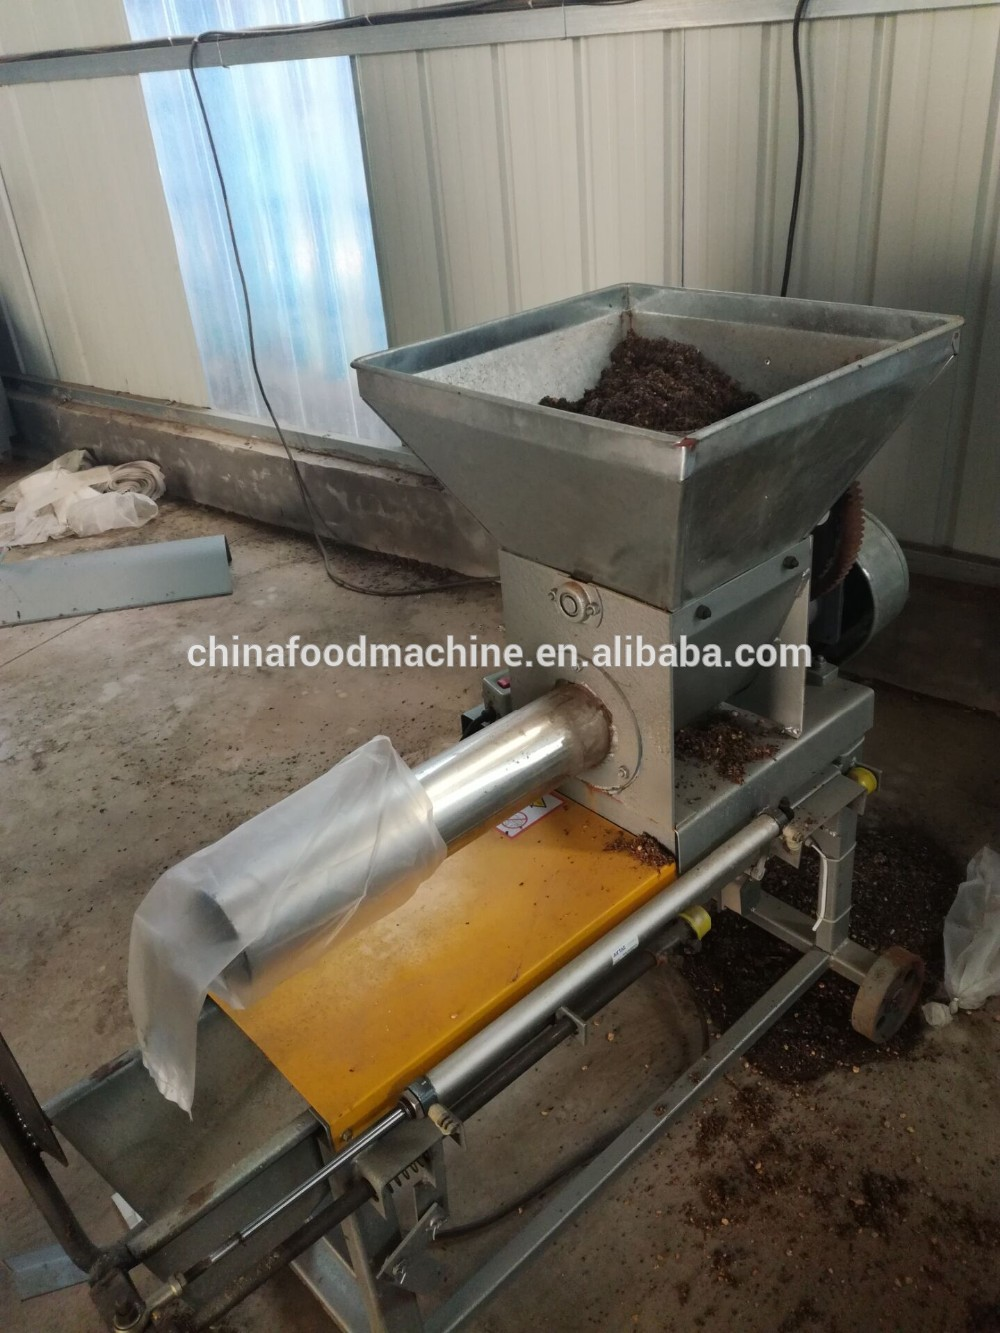 2018 Hot Sales Automatic Mushroom Growing Bag Filling Production Line